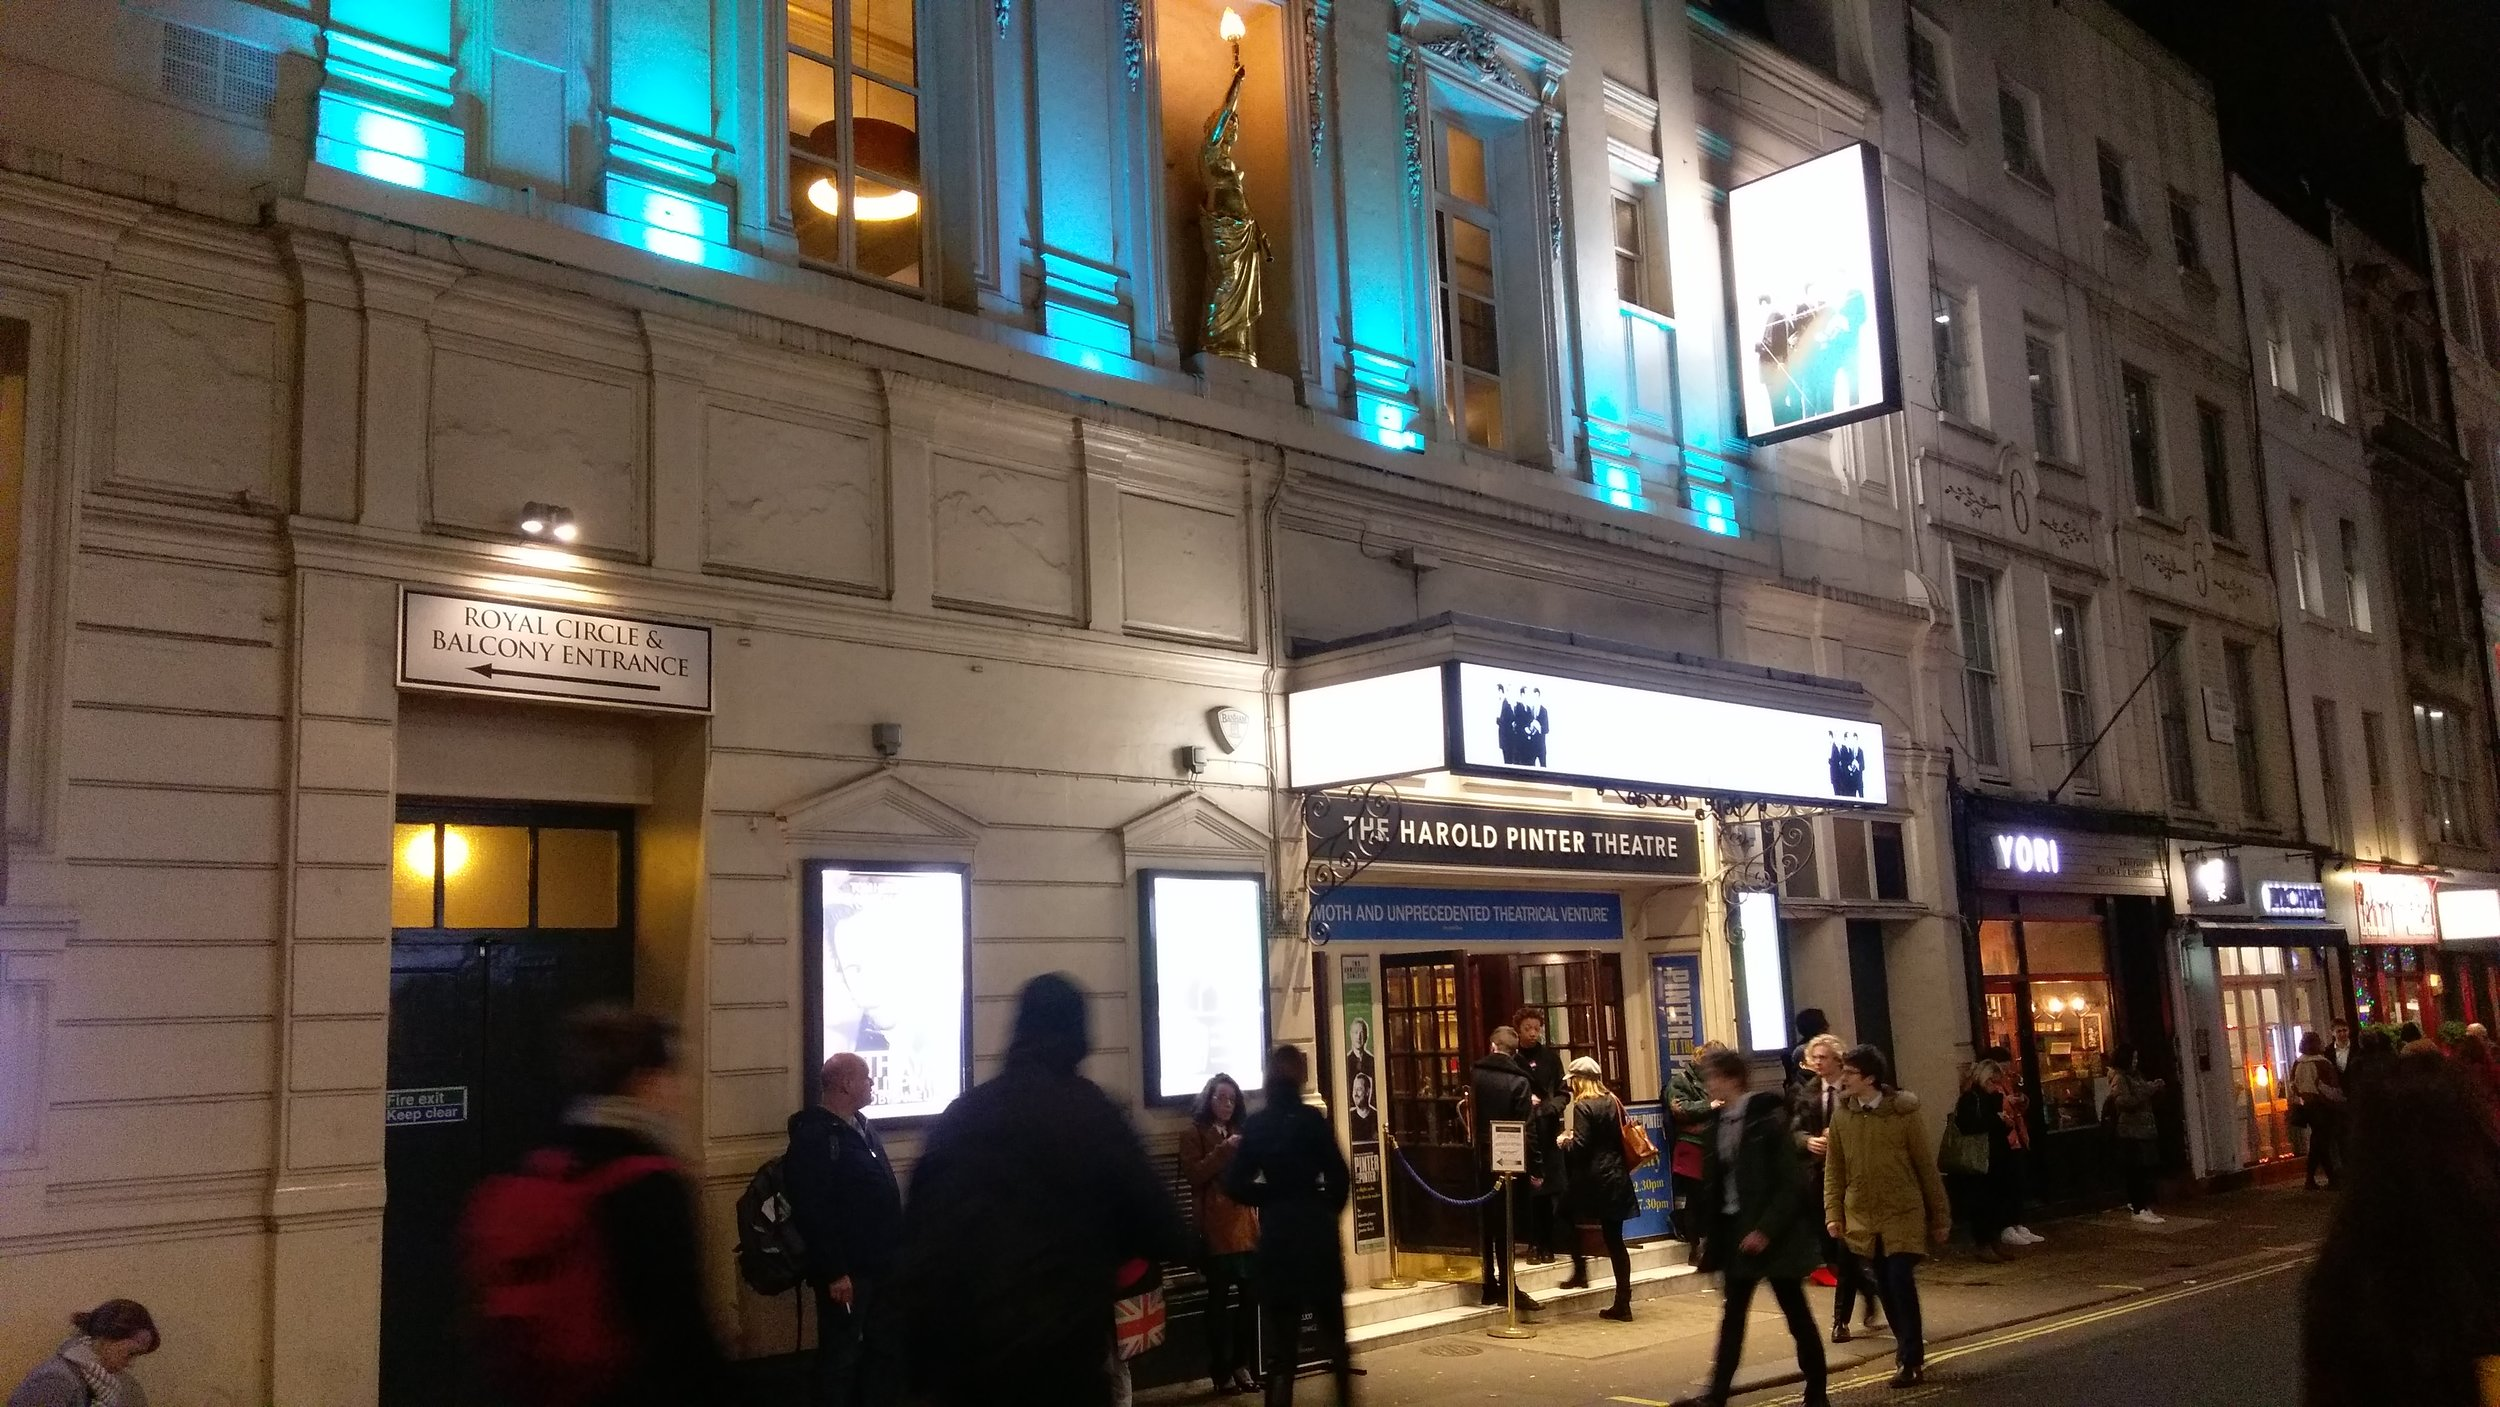 Harold Pinter Theatre - visited 07/02/2019